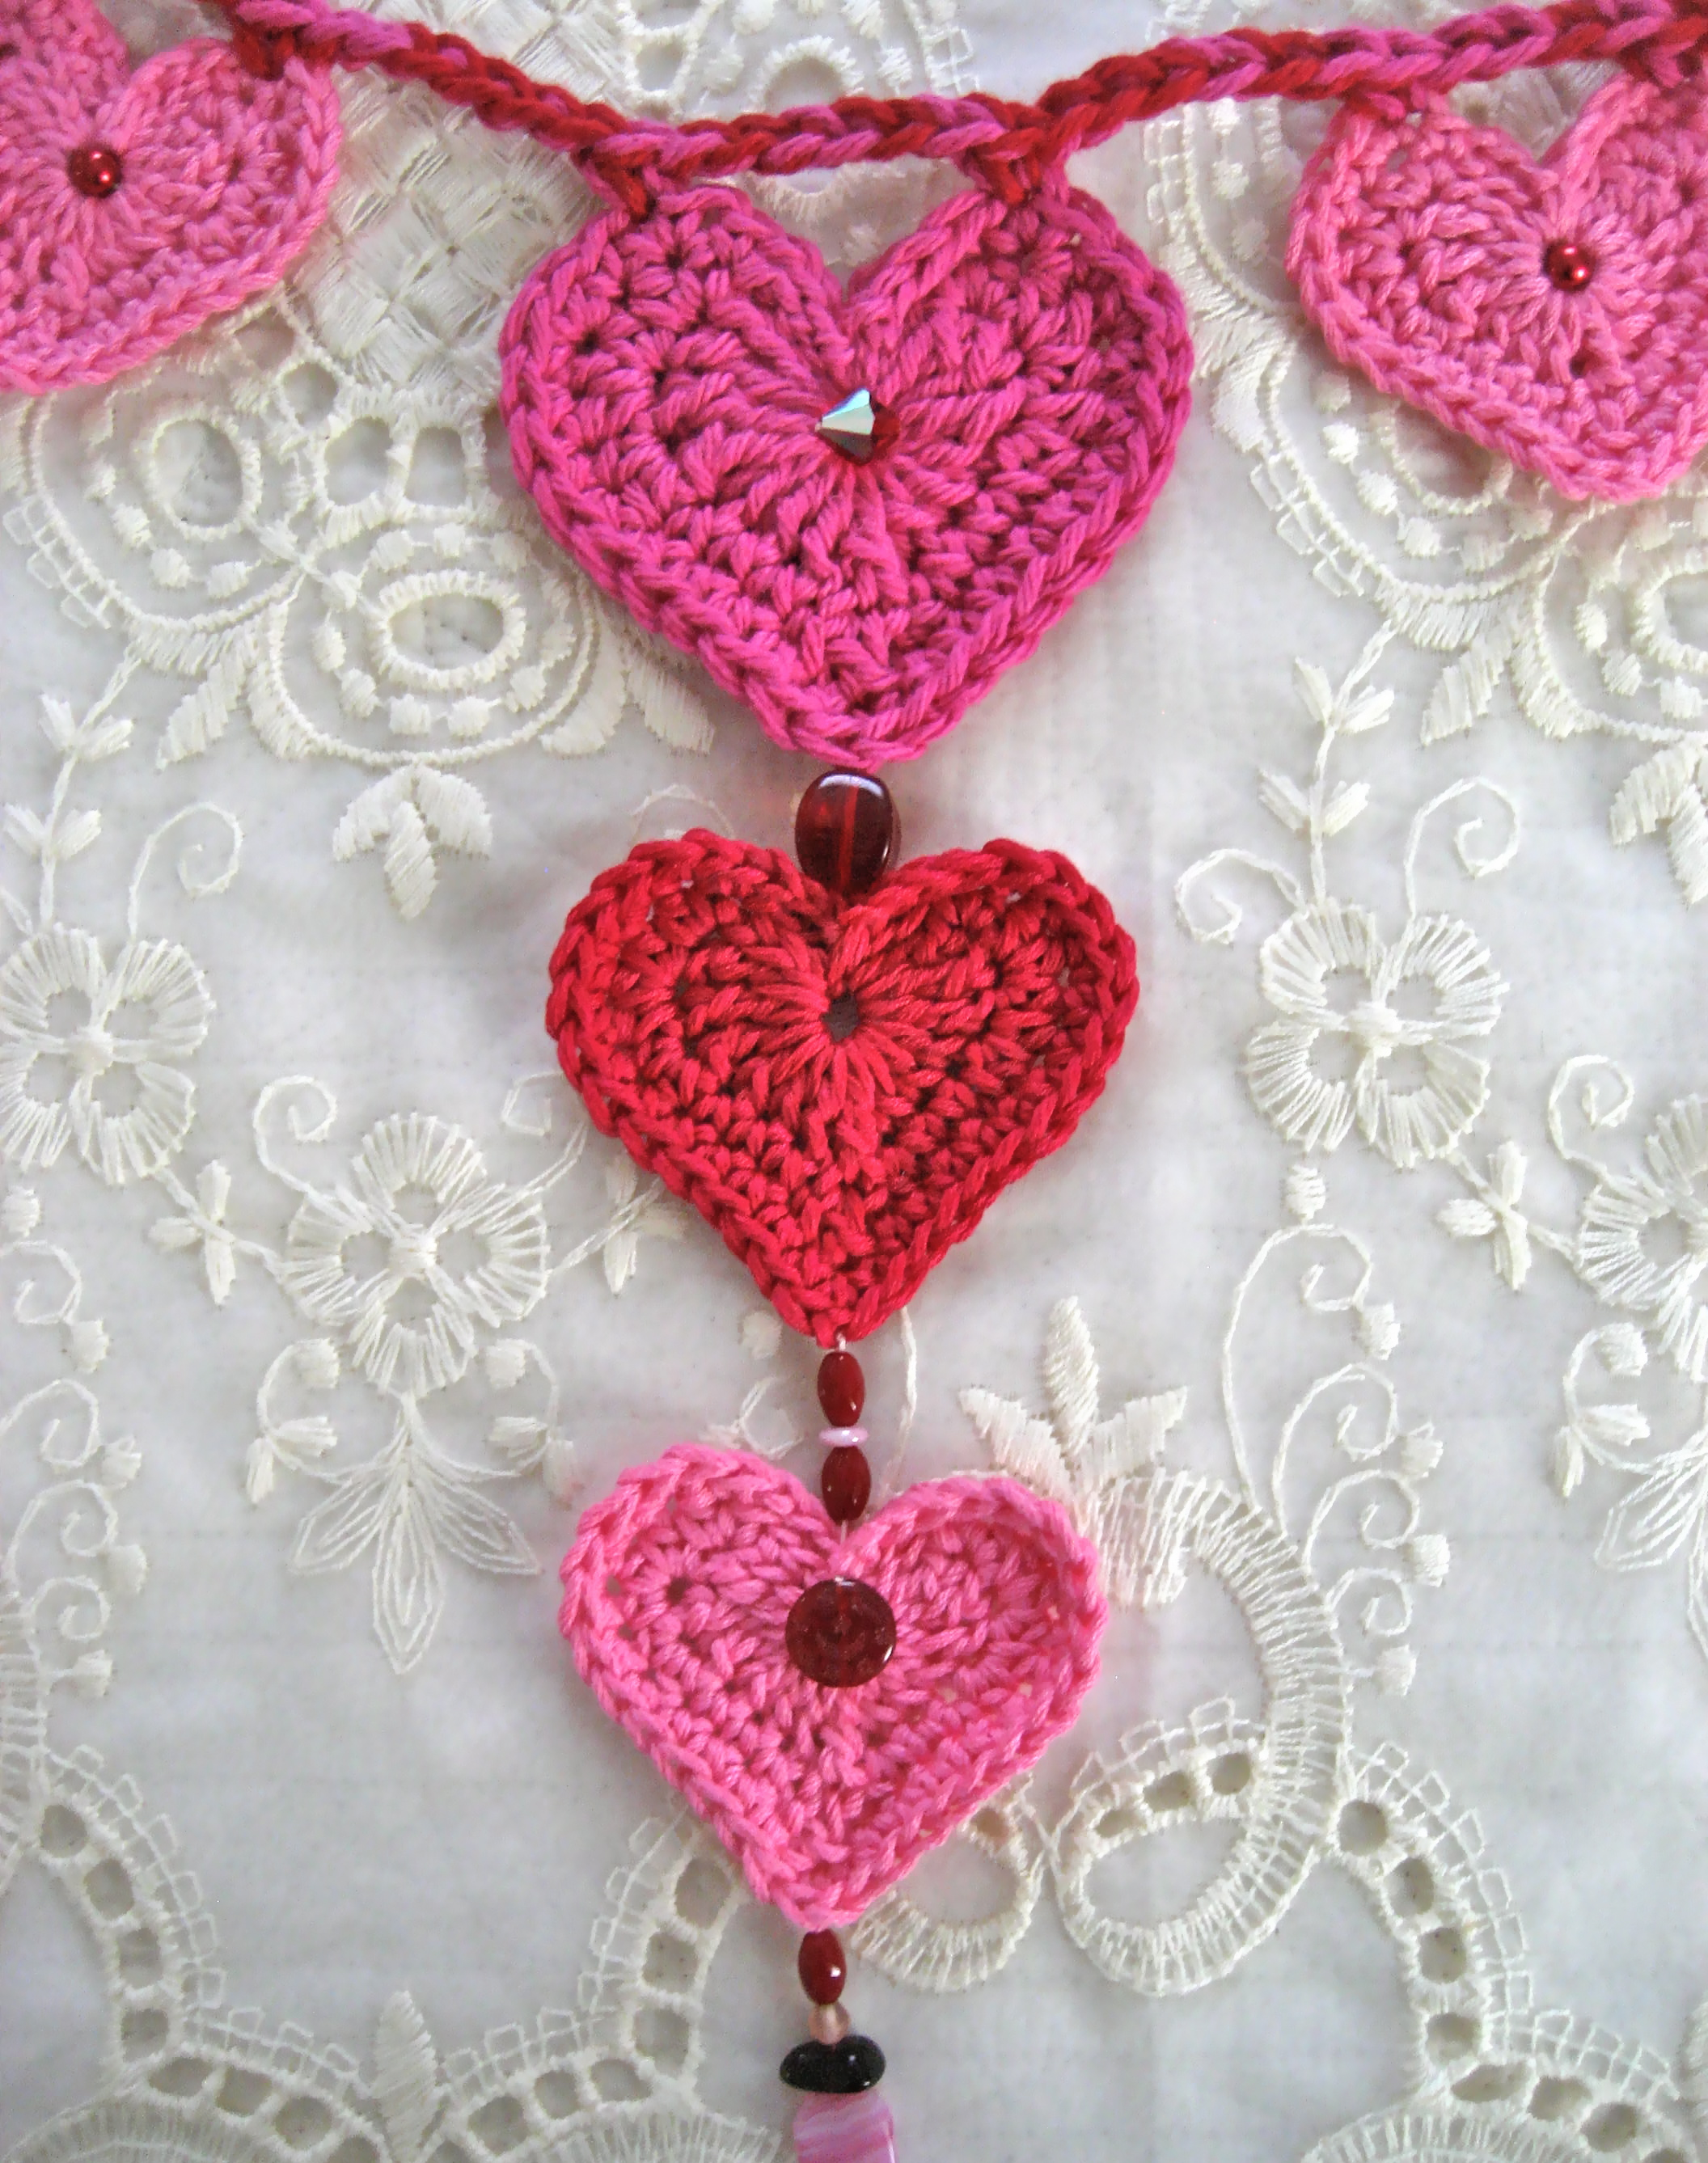 Crochet Heart : Crochet Heart New Calendar Template Site